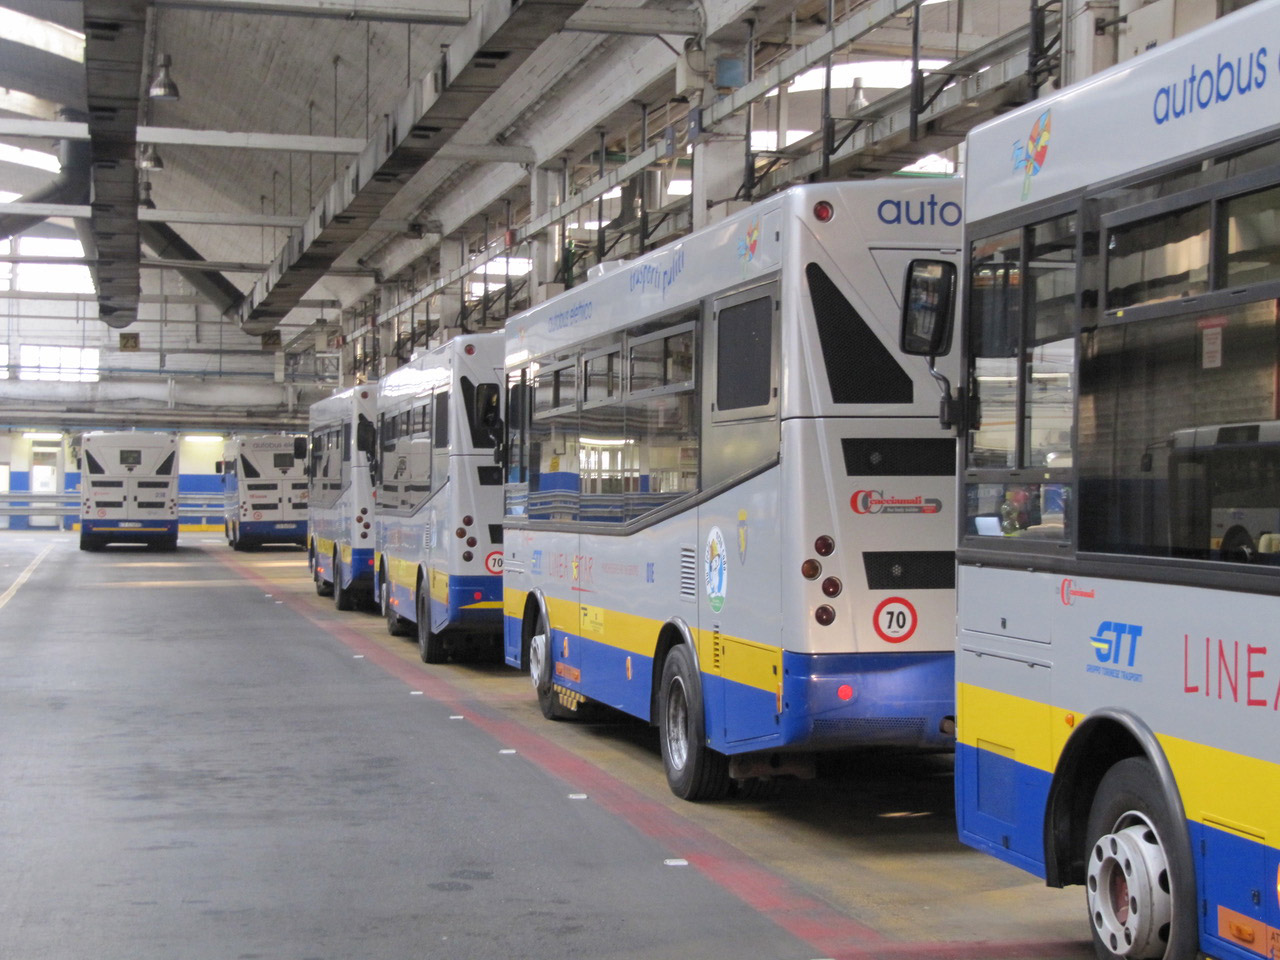 Largest wirelessly charged electric bus fleet in Europe